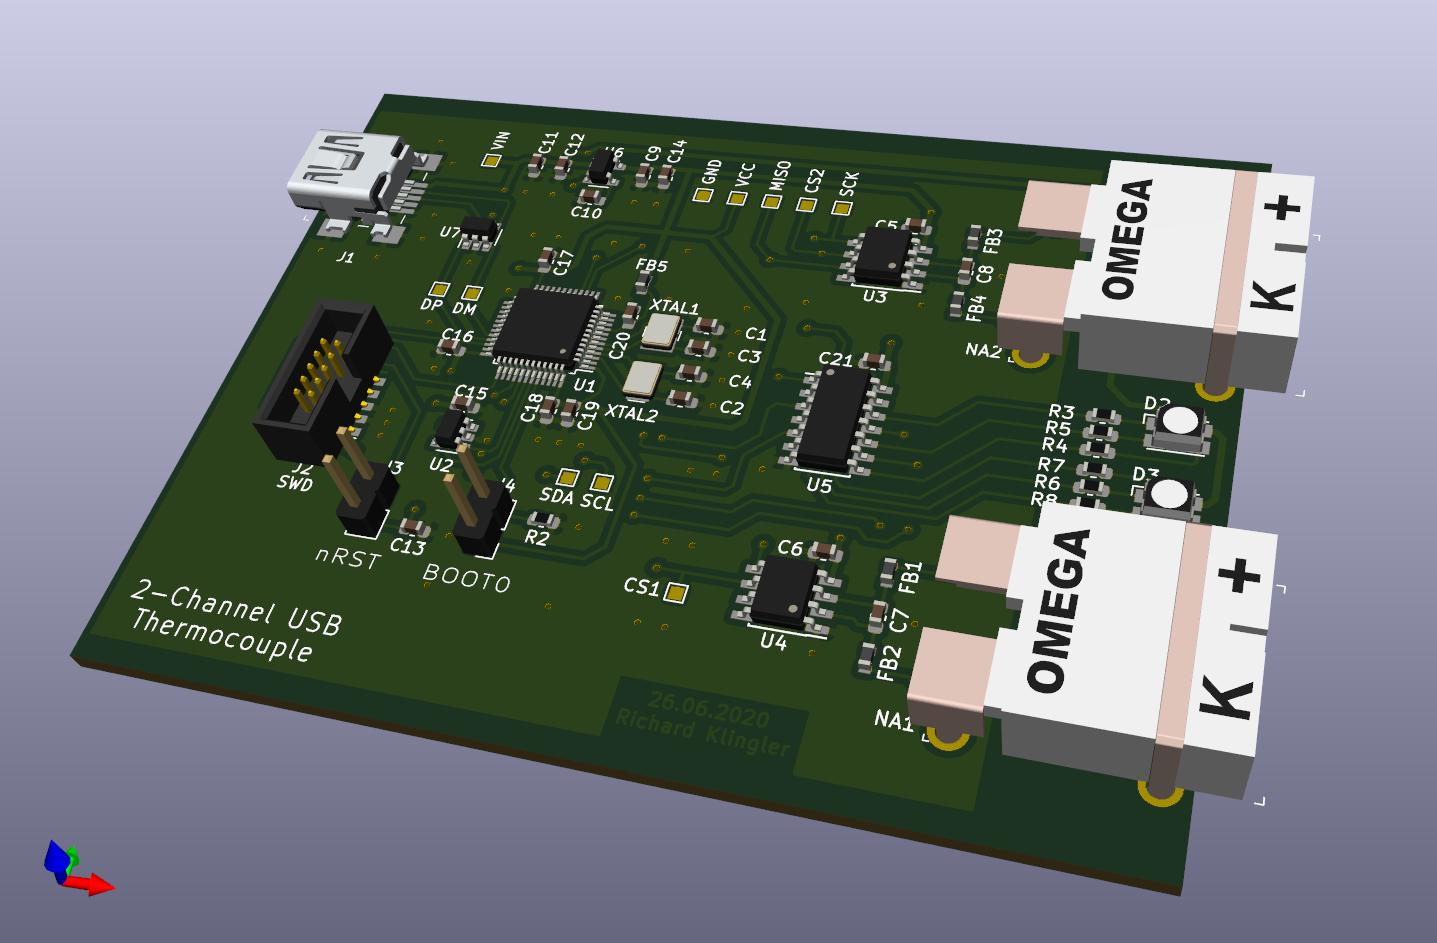 2-channel USB thermocouple sensor using STM32